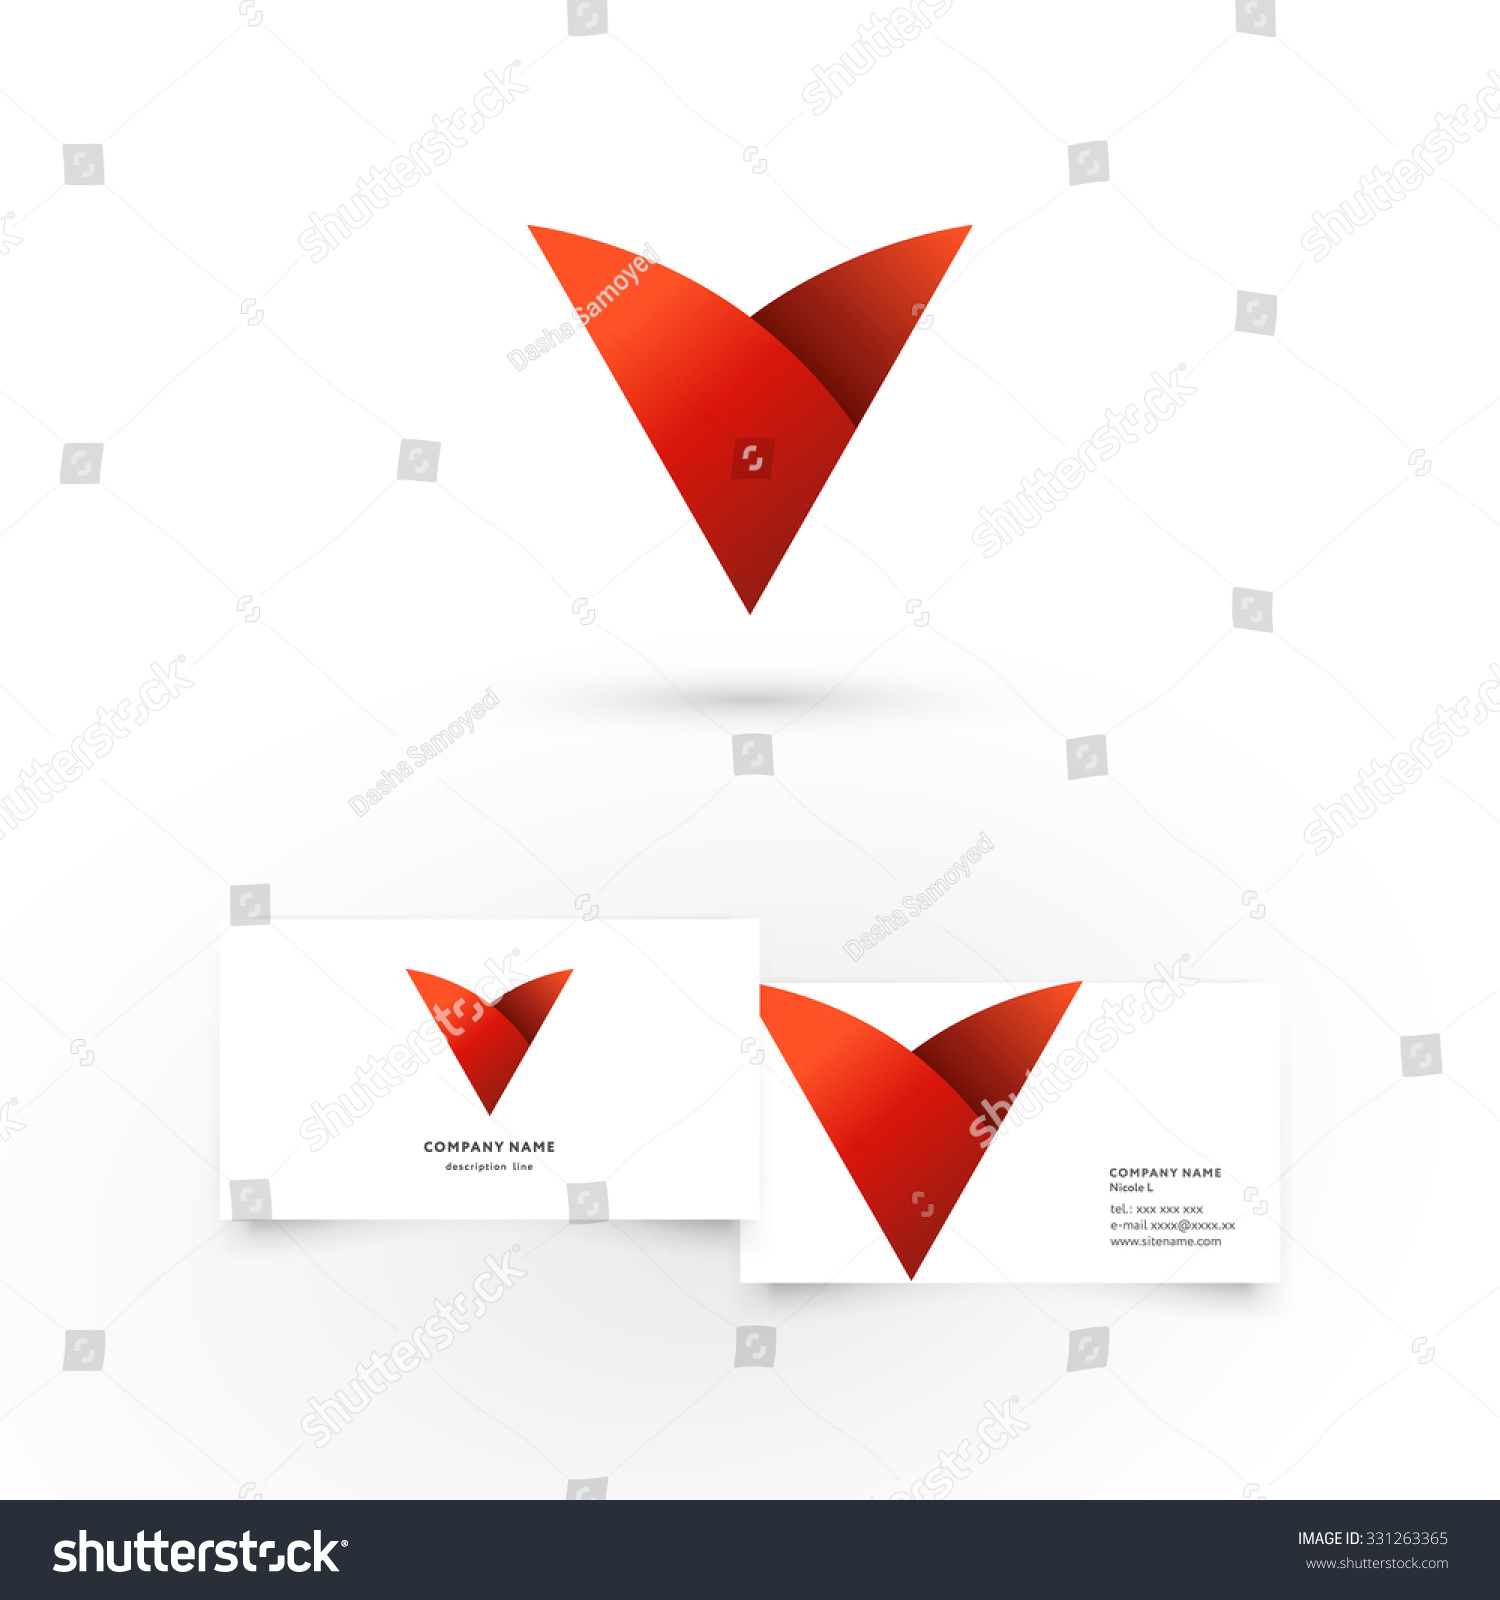 Modern icon design v letter shape stock vector 331263365 modern icon design v letter shape element with business card template best for identity and magicingreecefo Choice Image